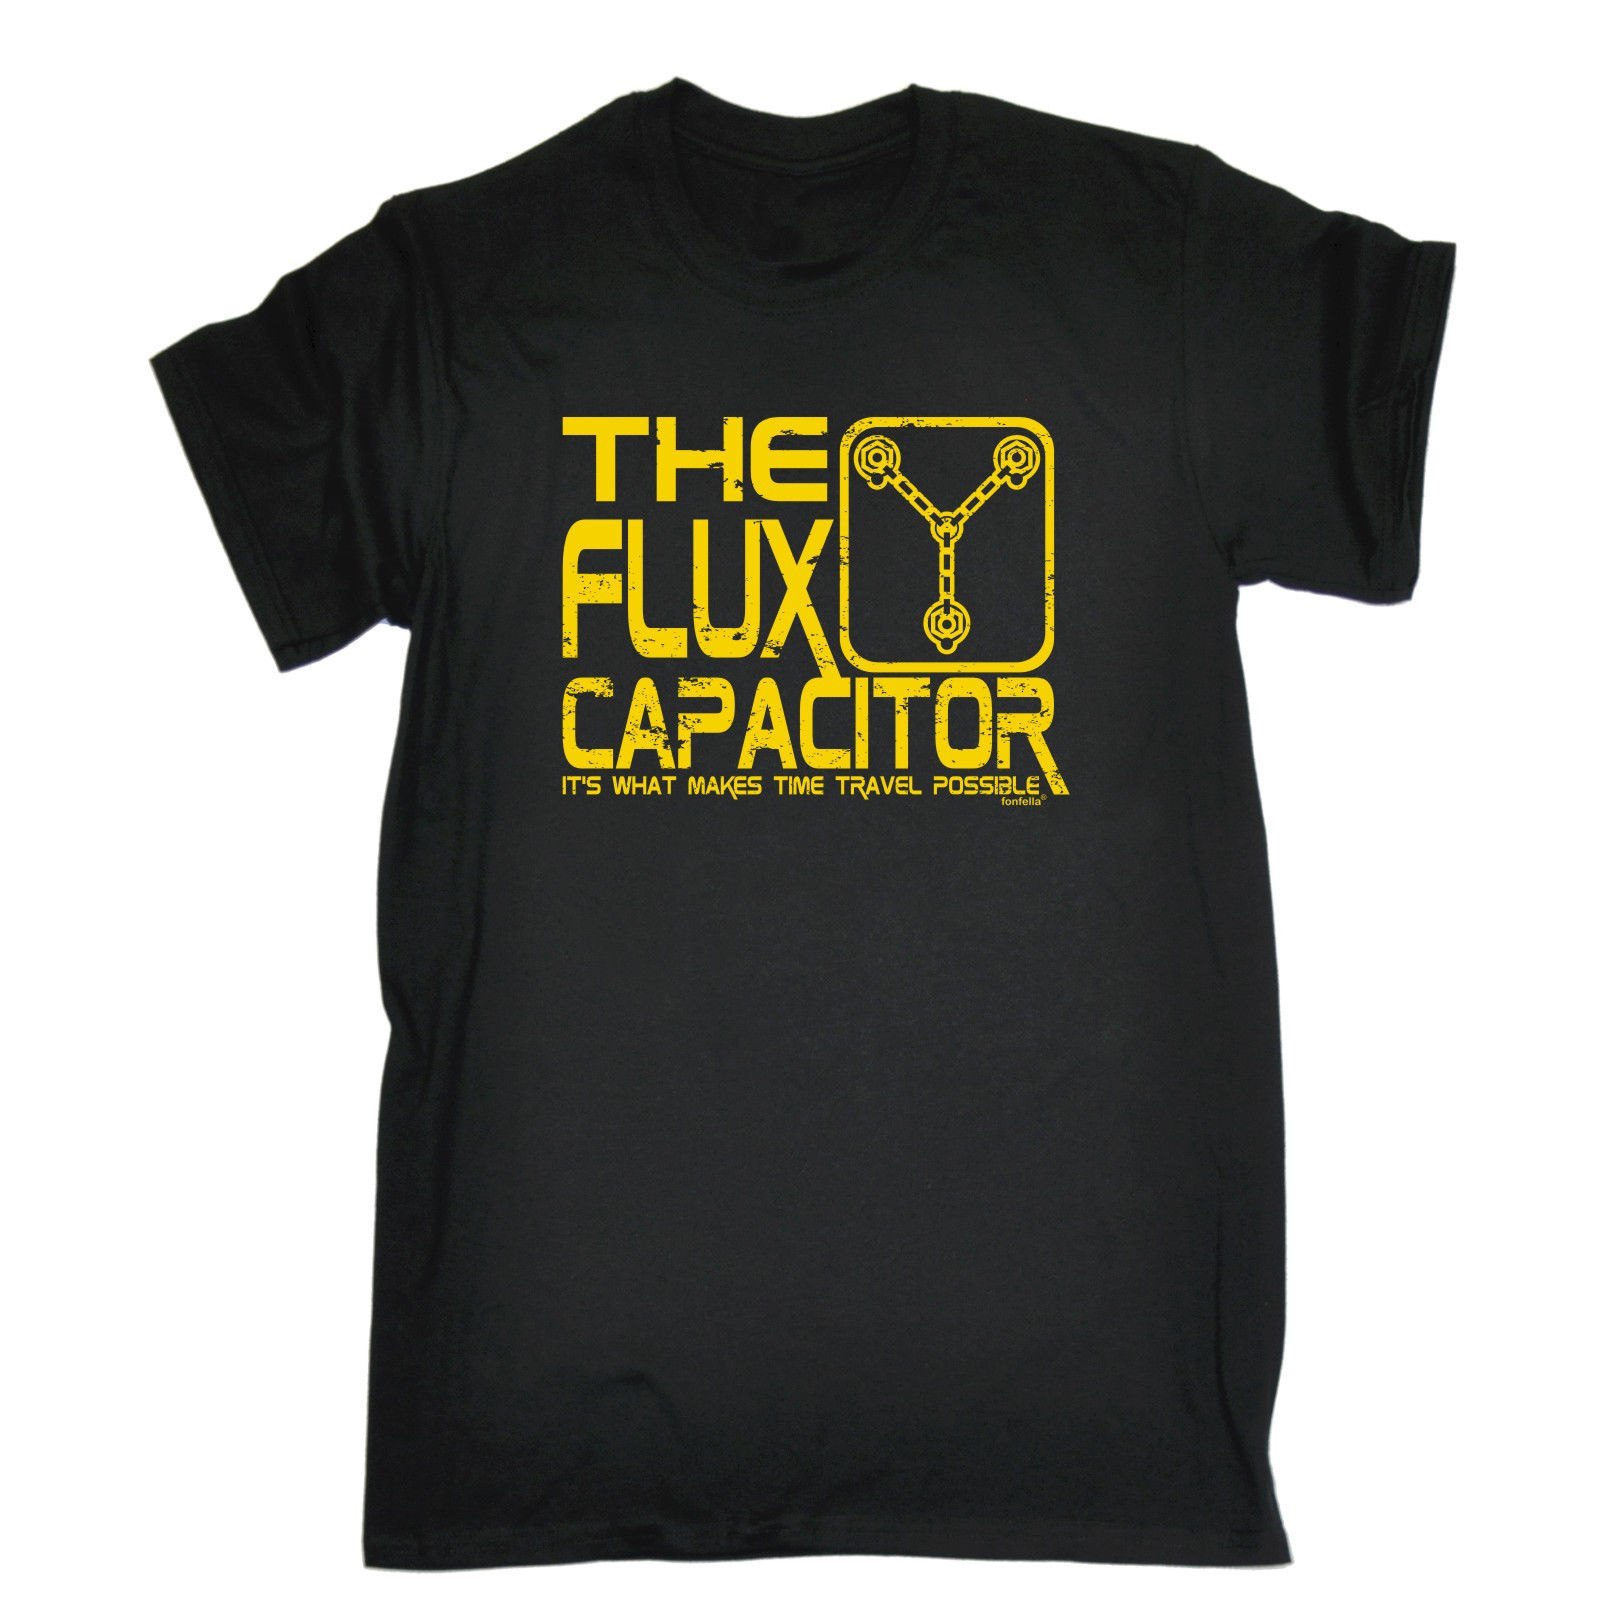 THE FLUX CAPACITOR TIME TRAVEL POSSIBLE T-SHIRT Funny Birthday Gift 123t Present Cheap Crew Neck MenS Top Tee T Shirt